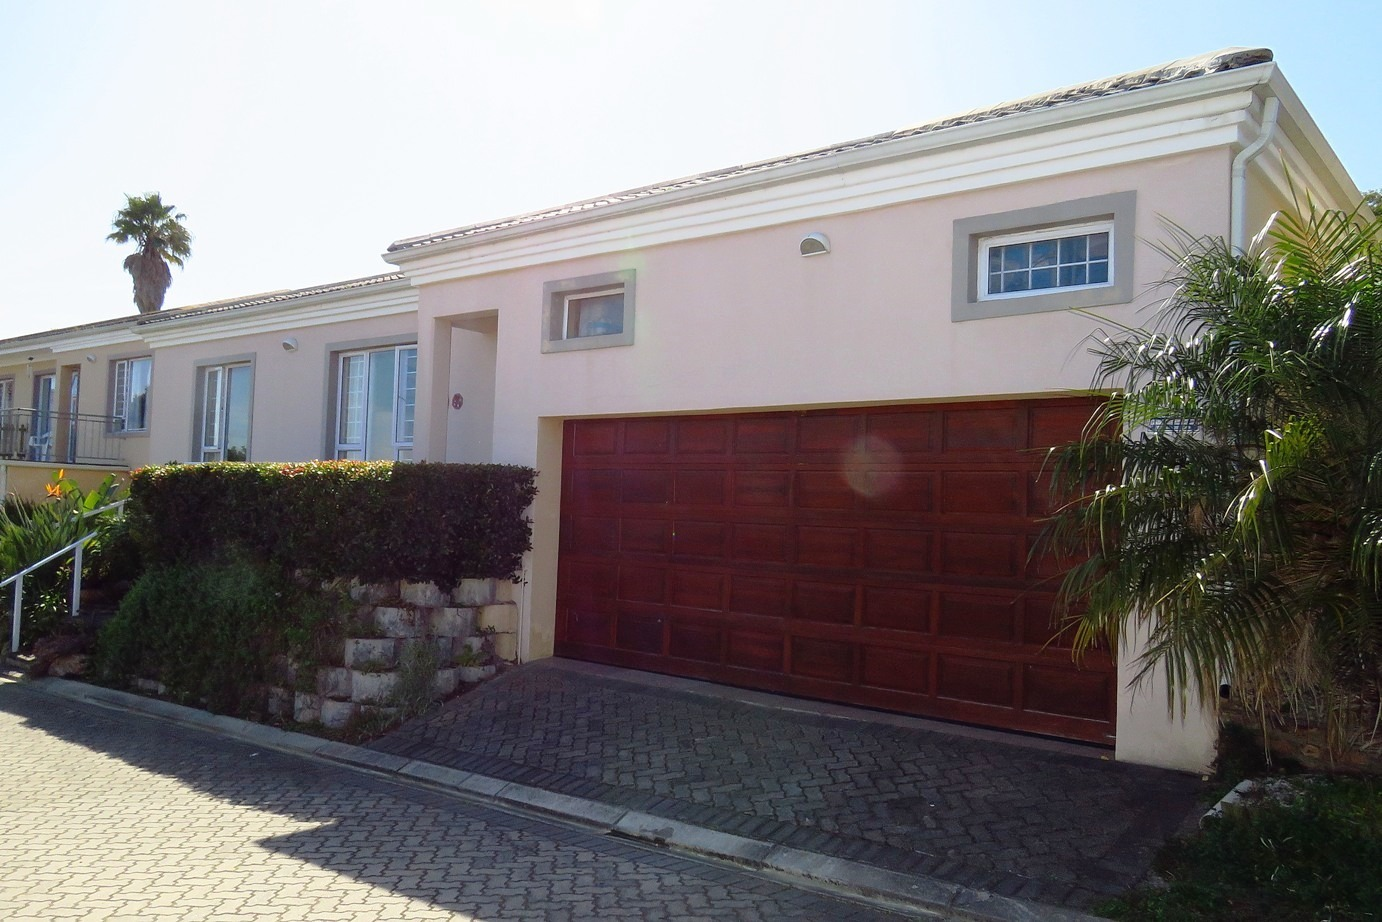 3 Bedroom House For Sale in Old Place